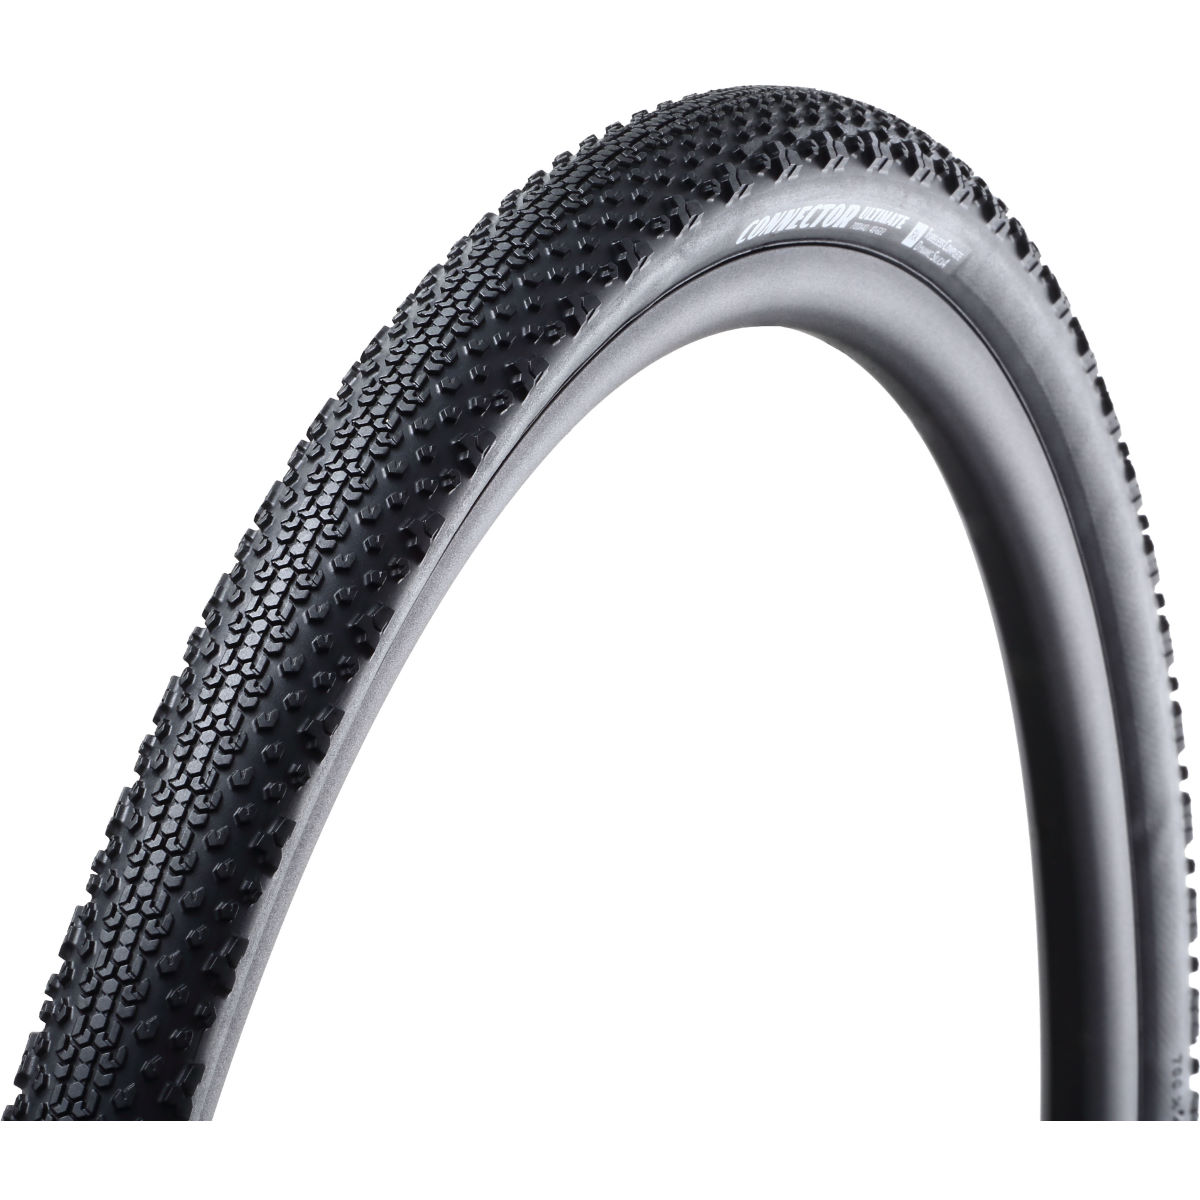 Goodyear Connector Tubeless Cyclocross Tyre - Cubiertas